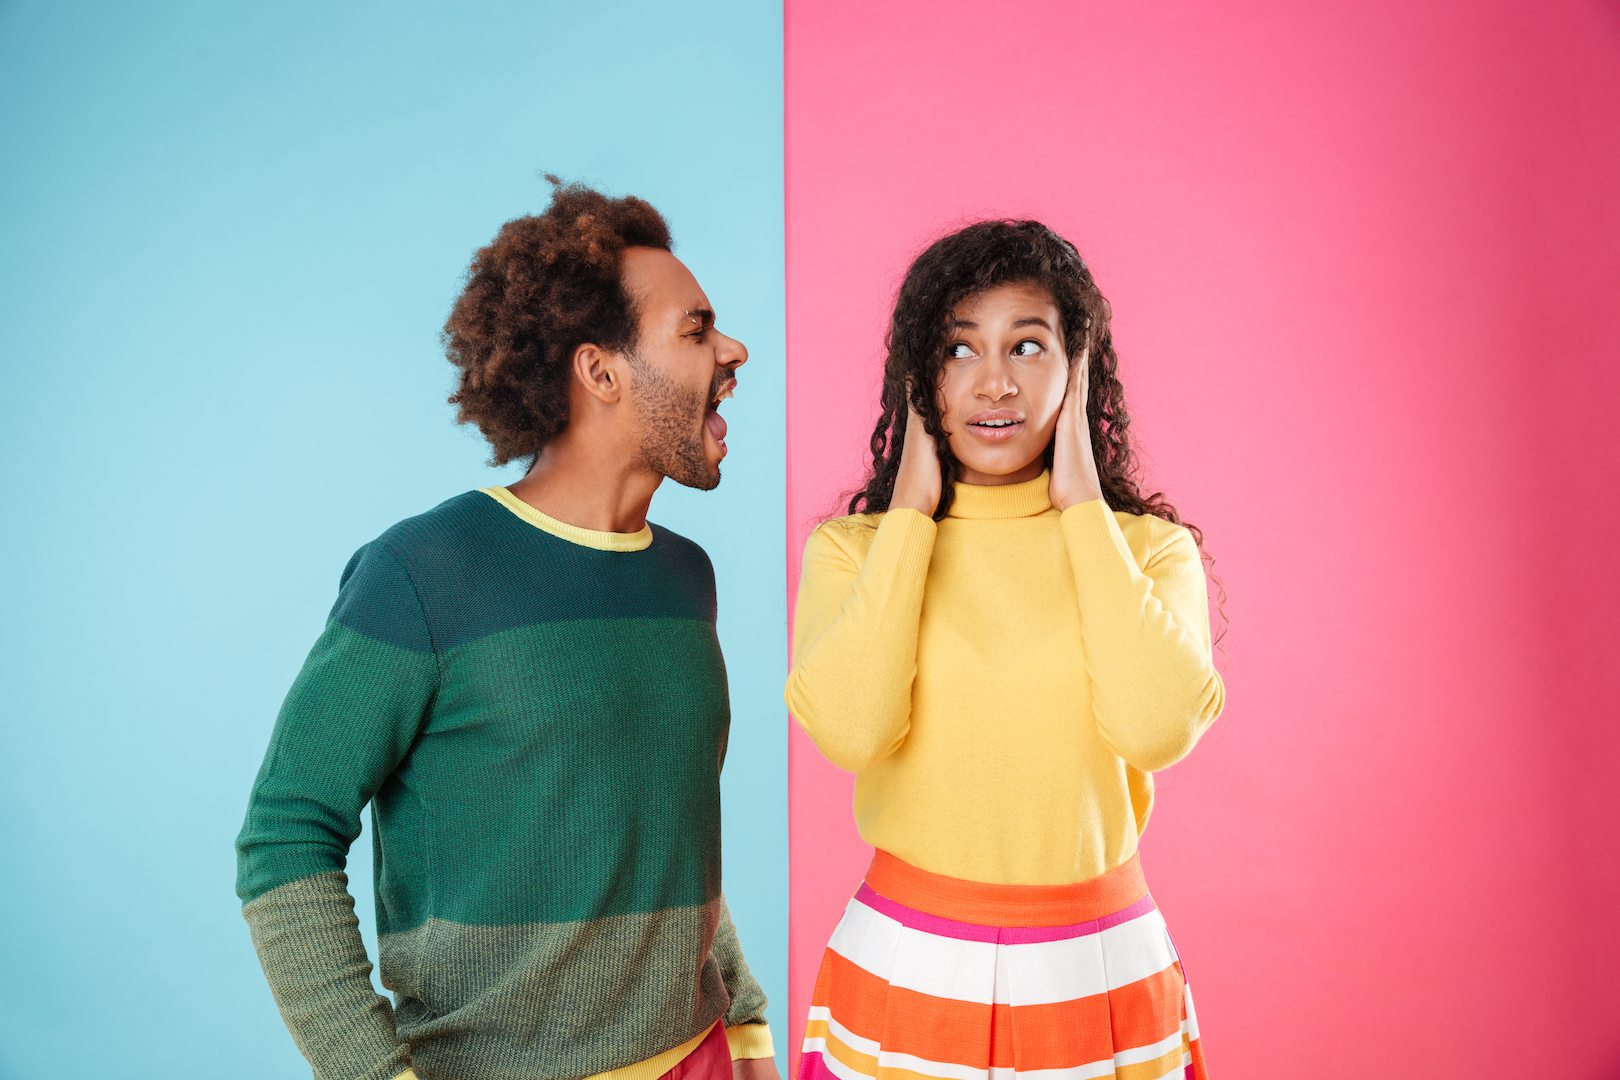 Differences graphicstock-angry-african-american-young-couple-shouting_rOM4b0r8hl copy